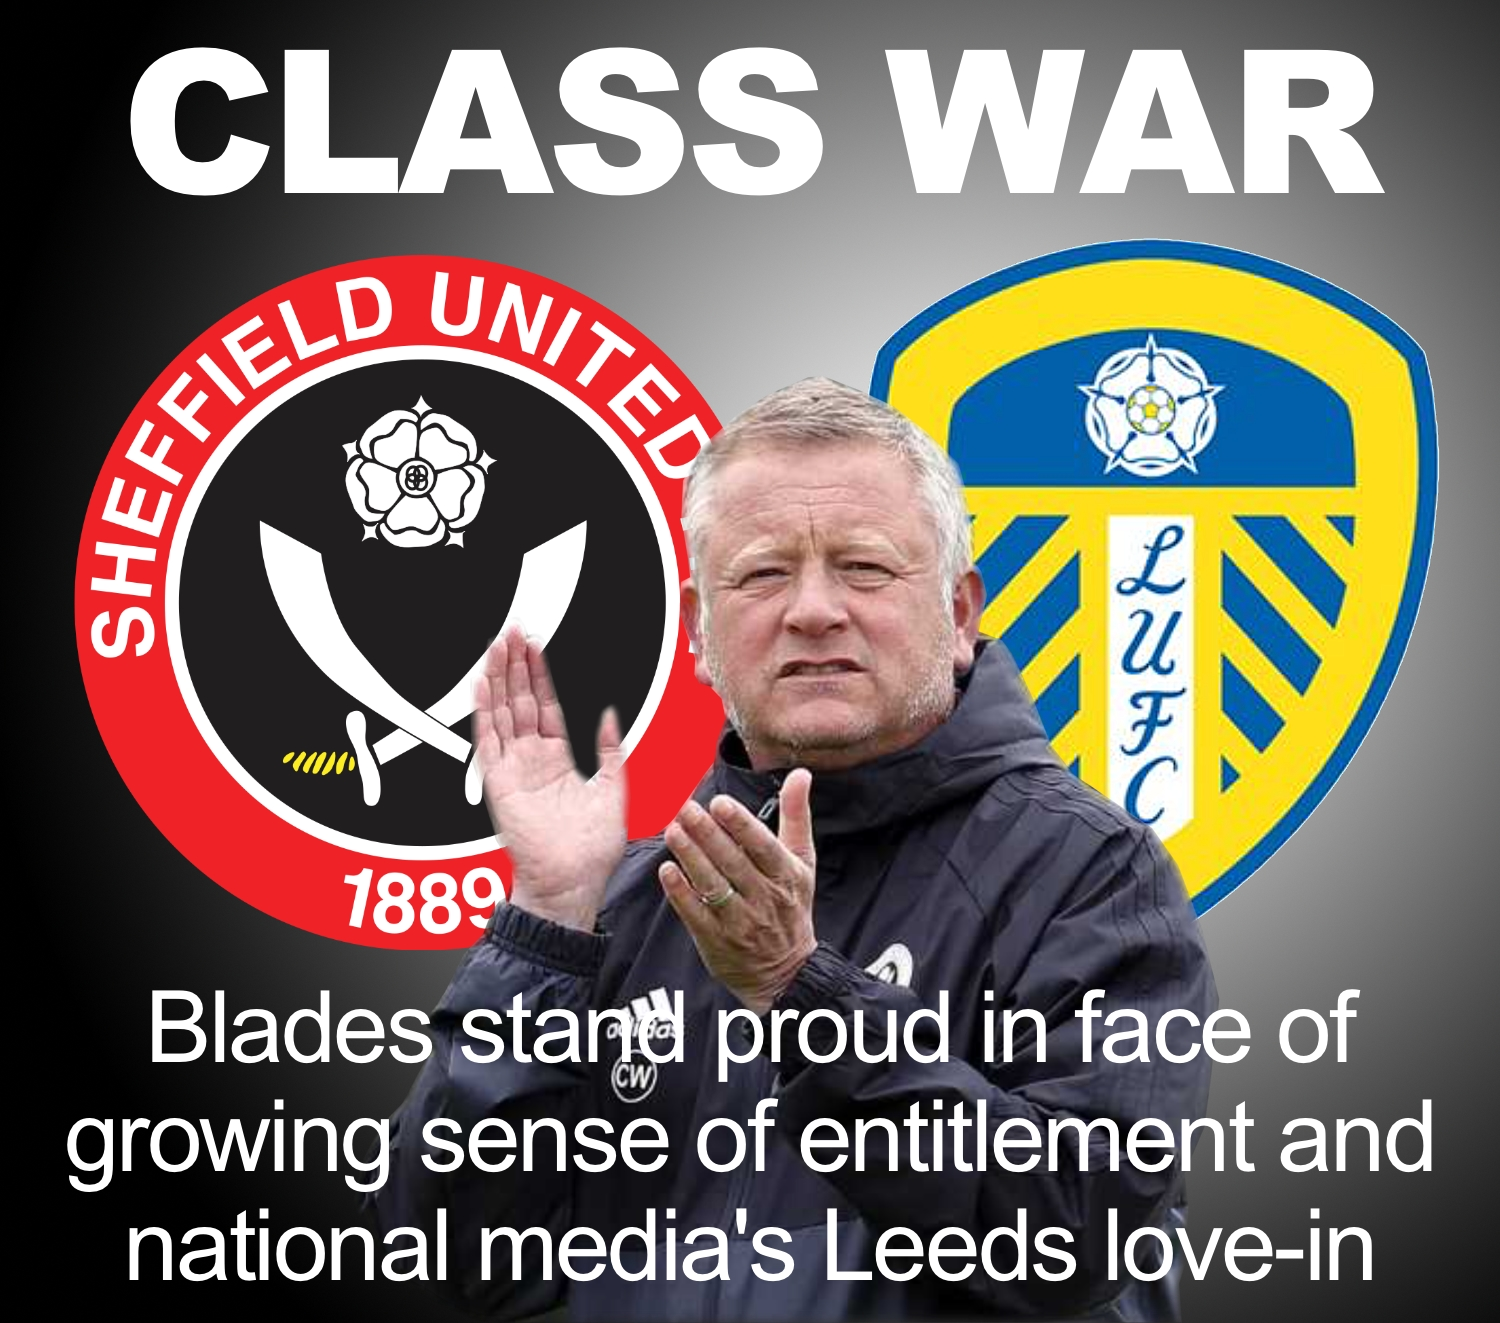 Sheffield United stand proud in face of national media class war which feeds Leeds United's growing sense of entitlement